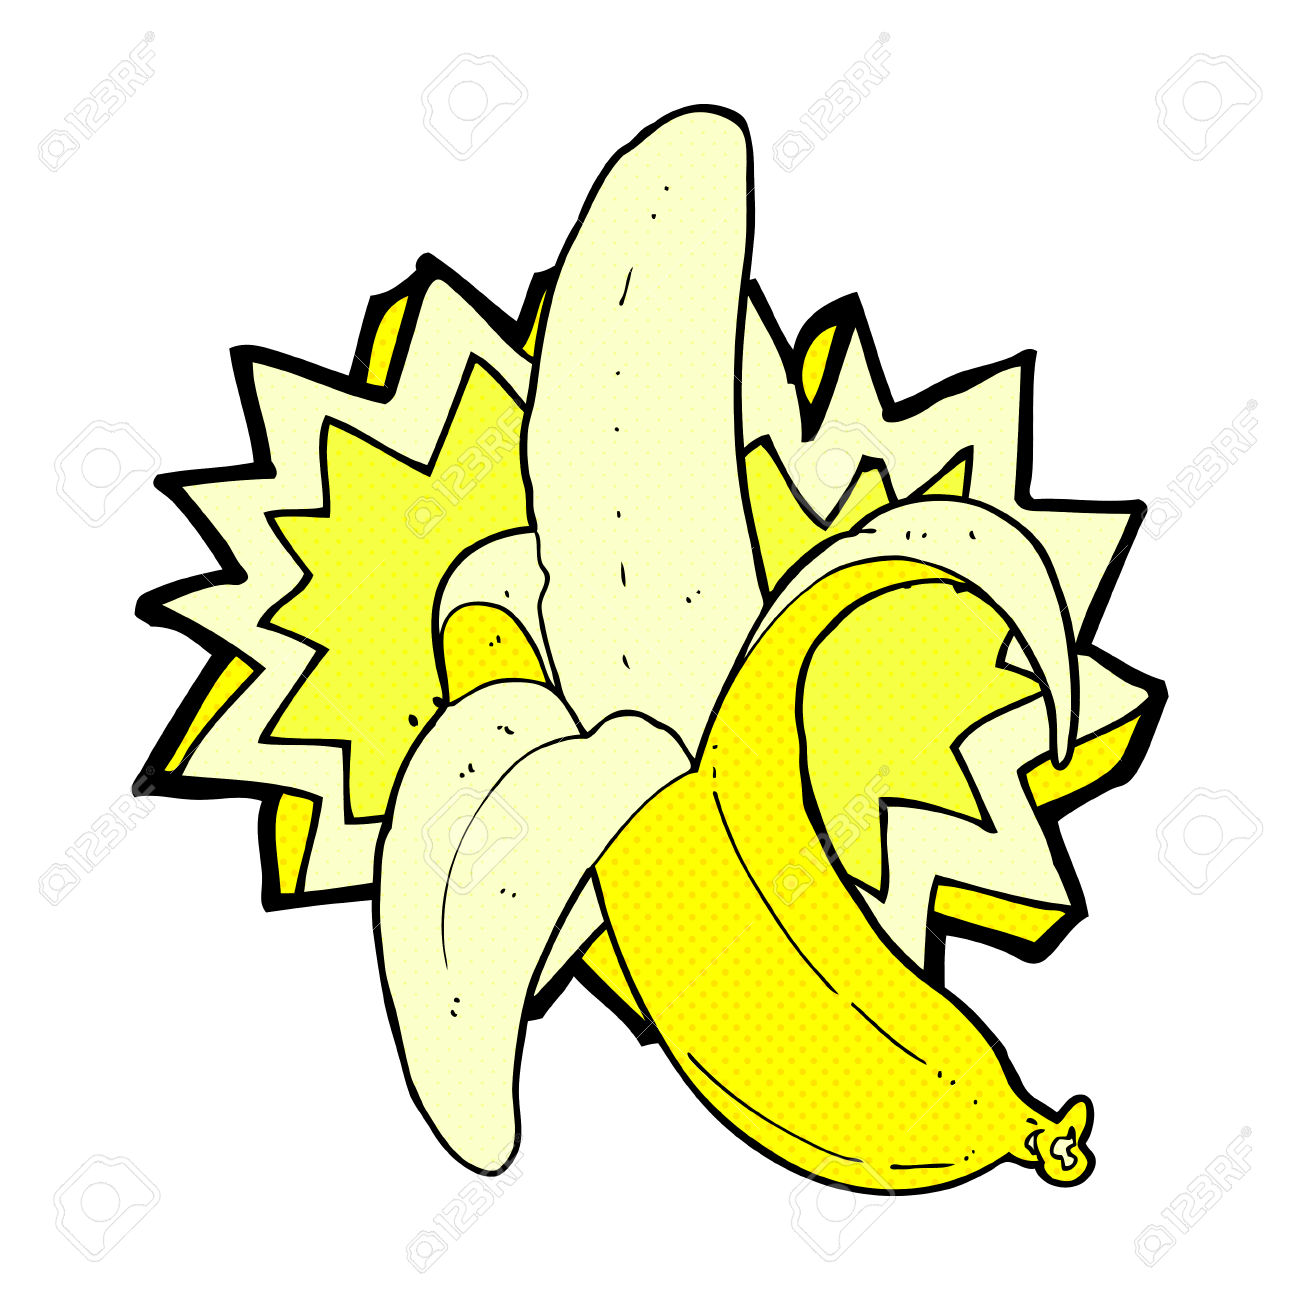 Retro Comic Book Style Cartoon Banana Symbol Royalty Free Cliparts.